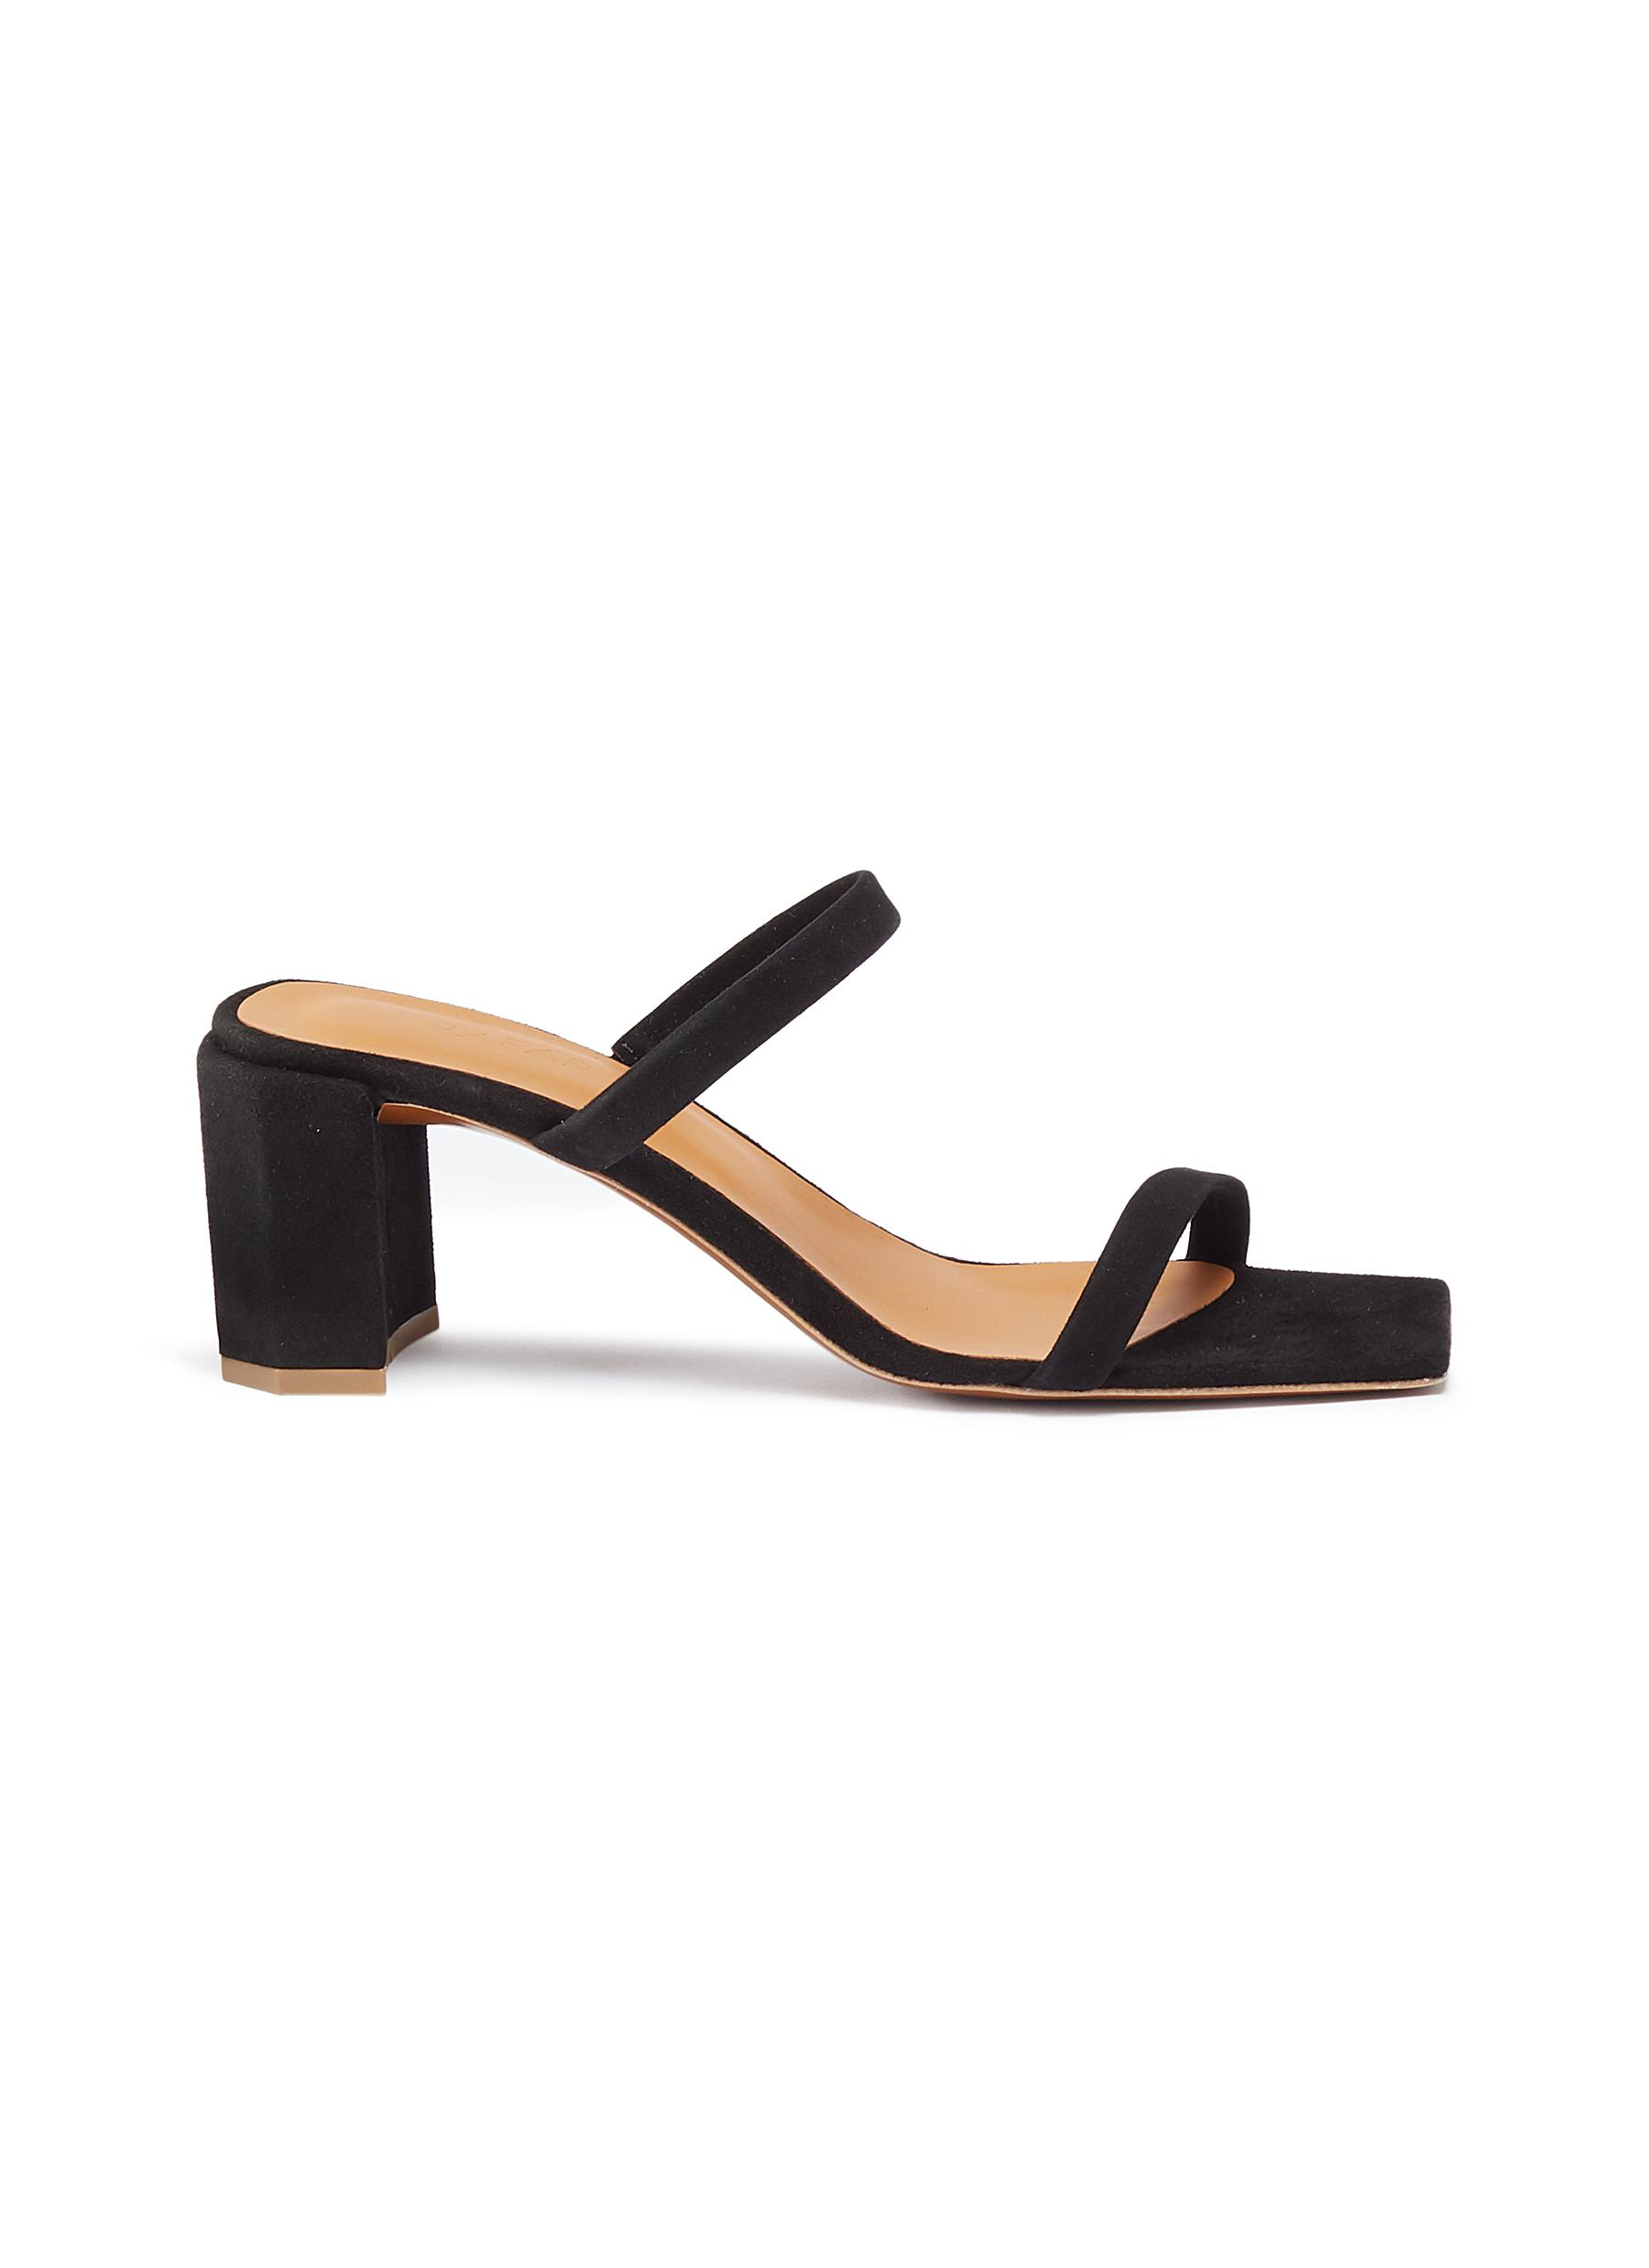 Tanya suede strappy sandals by By Far